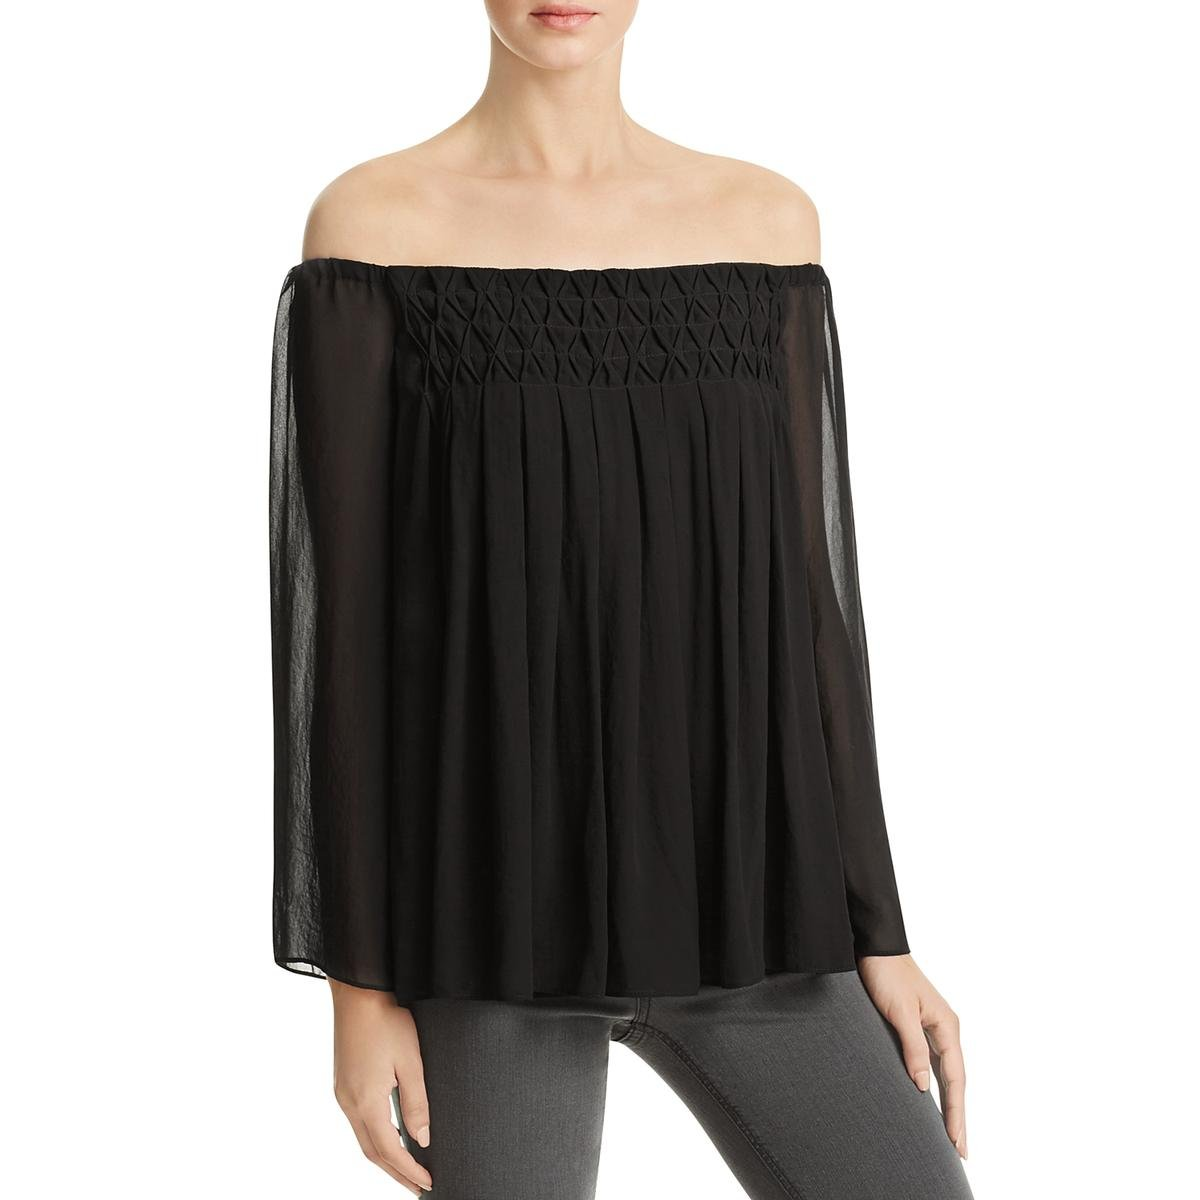 Bailey 44 Womens Pleated Chiffon Casual Top Black M